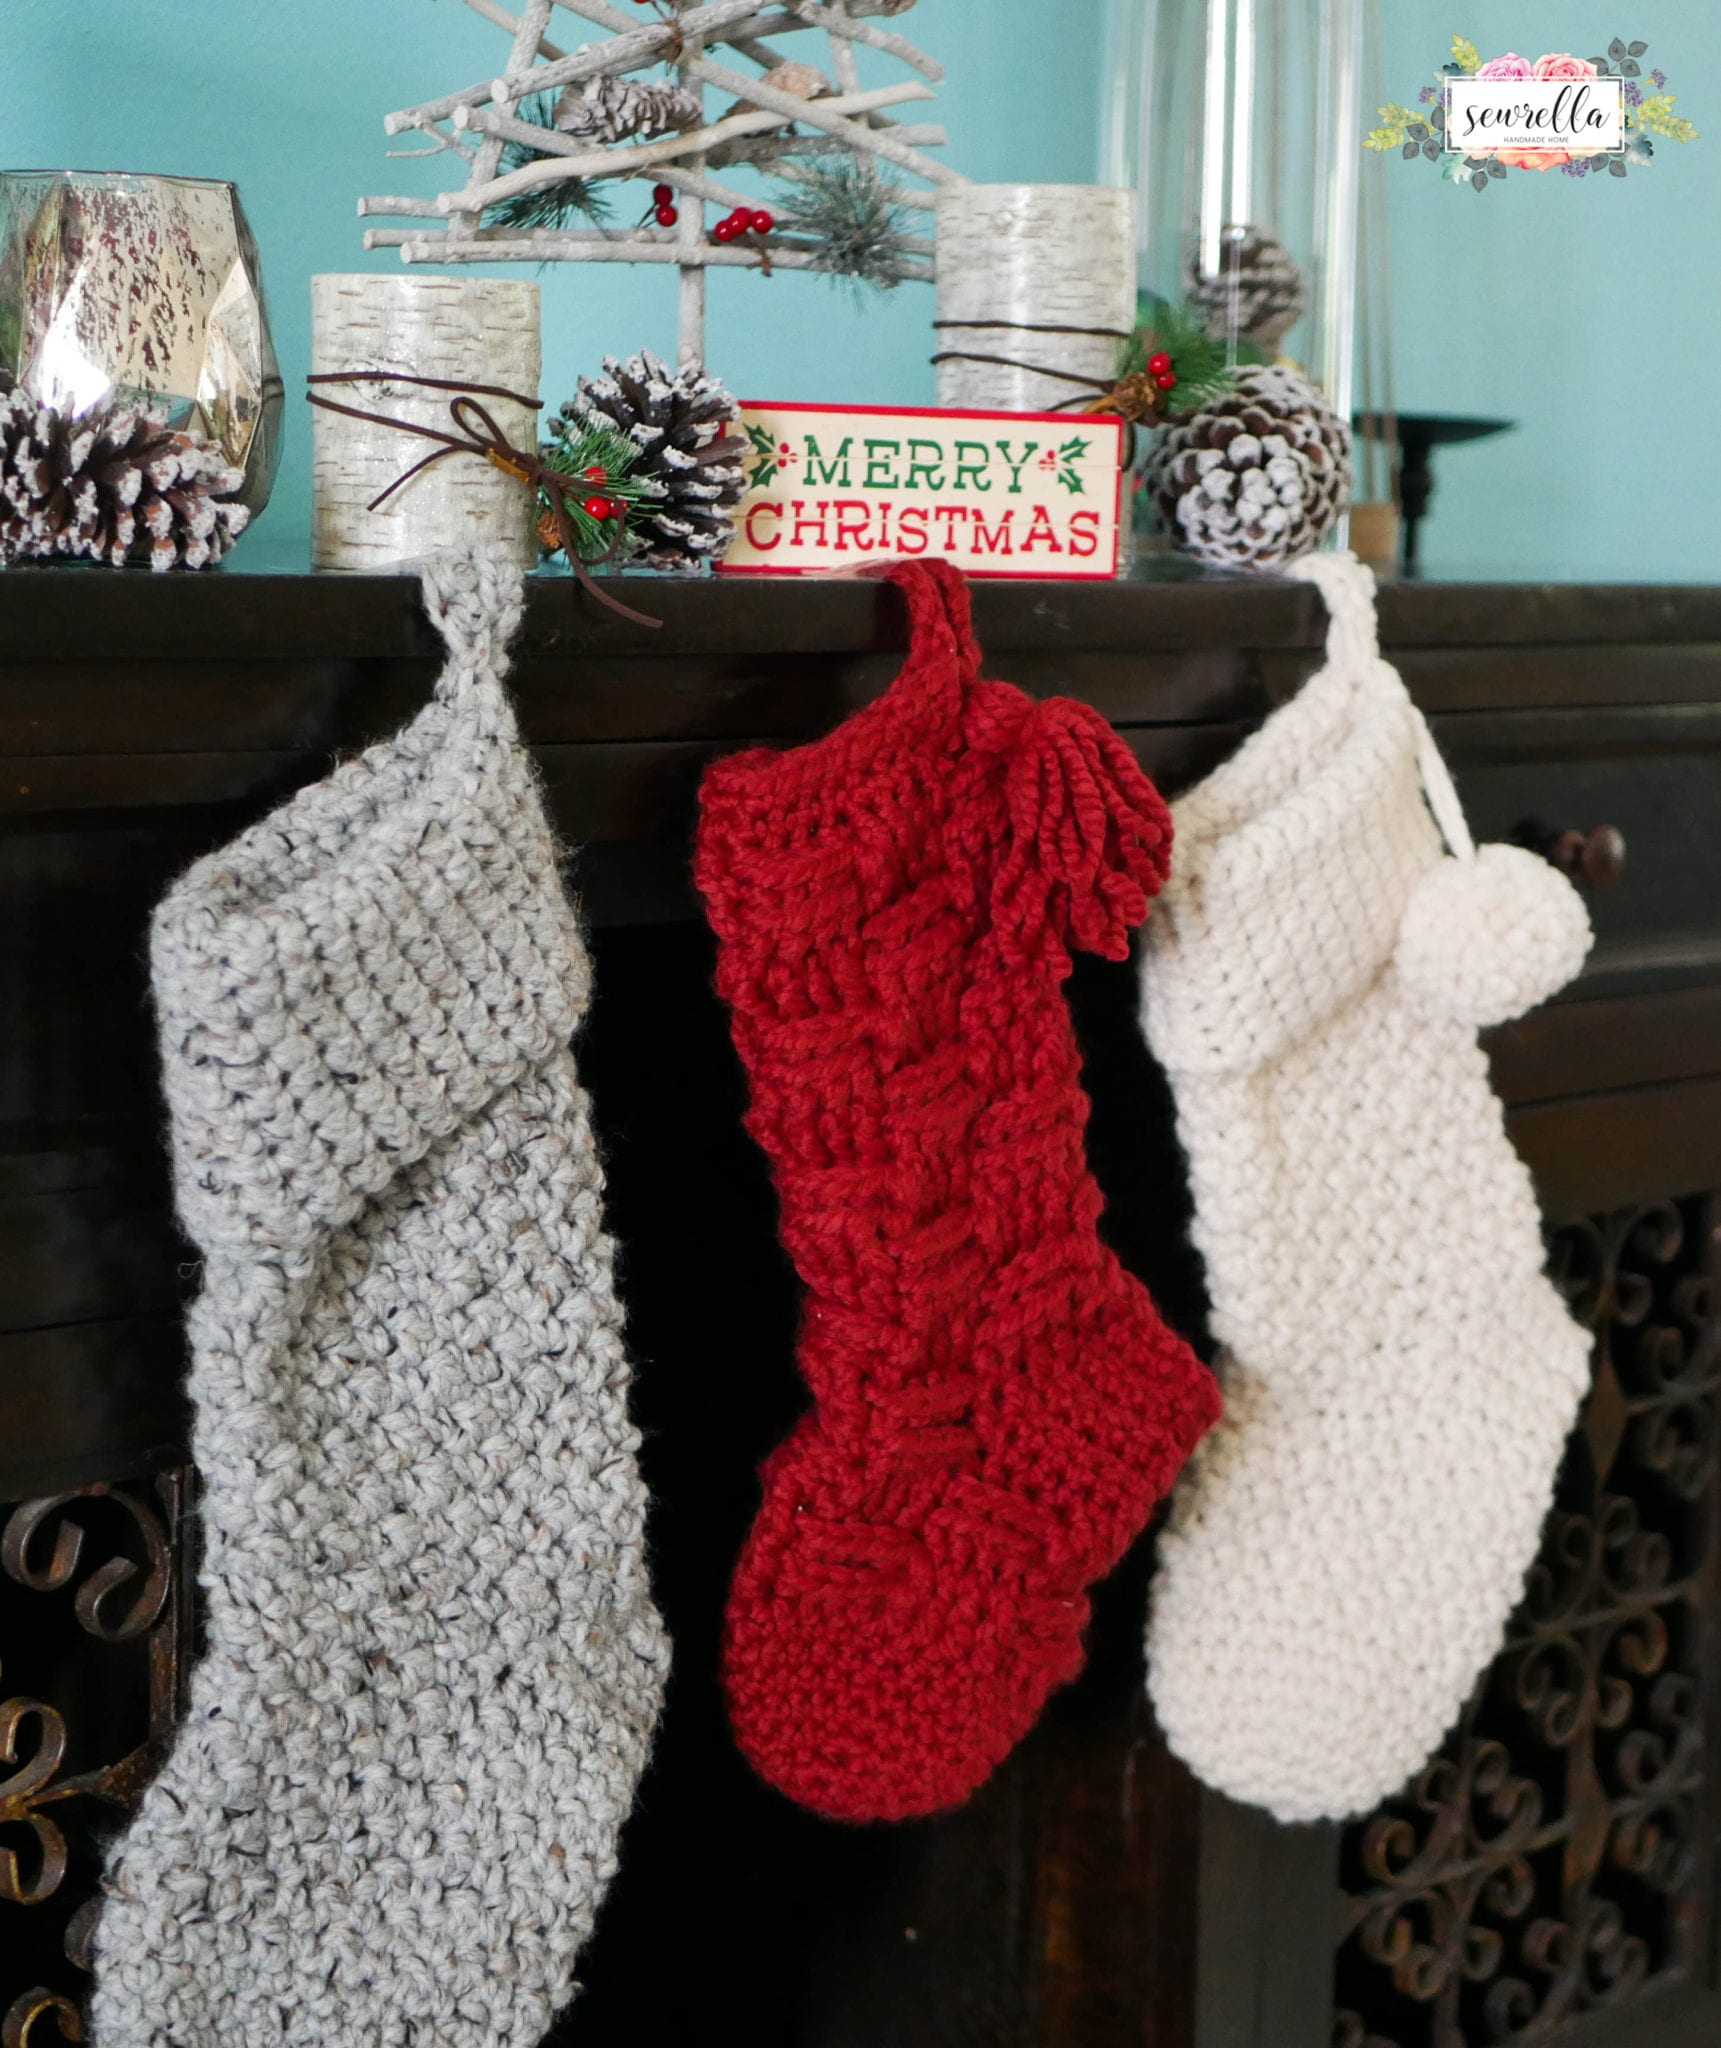 Jumbo Crochet Christmas Stockings - Sewrella